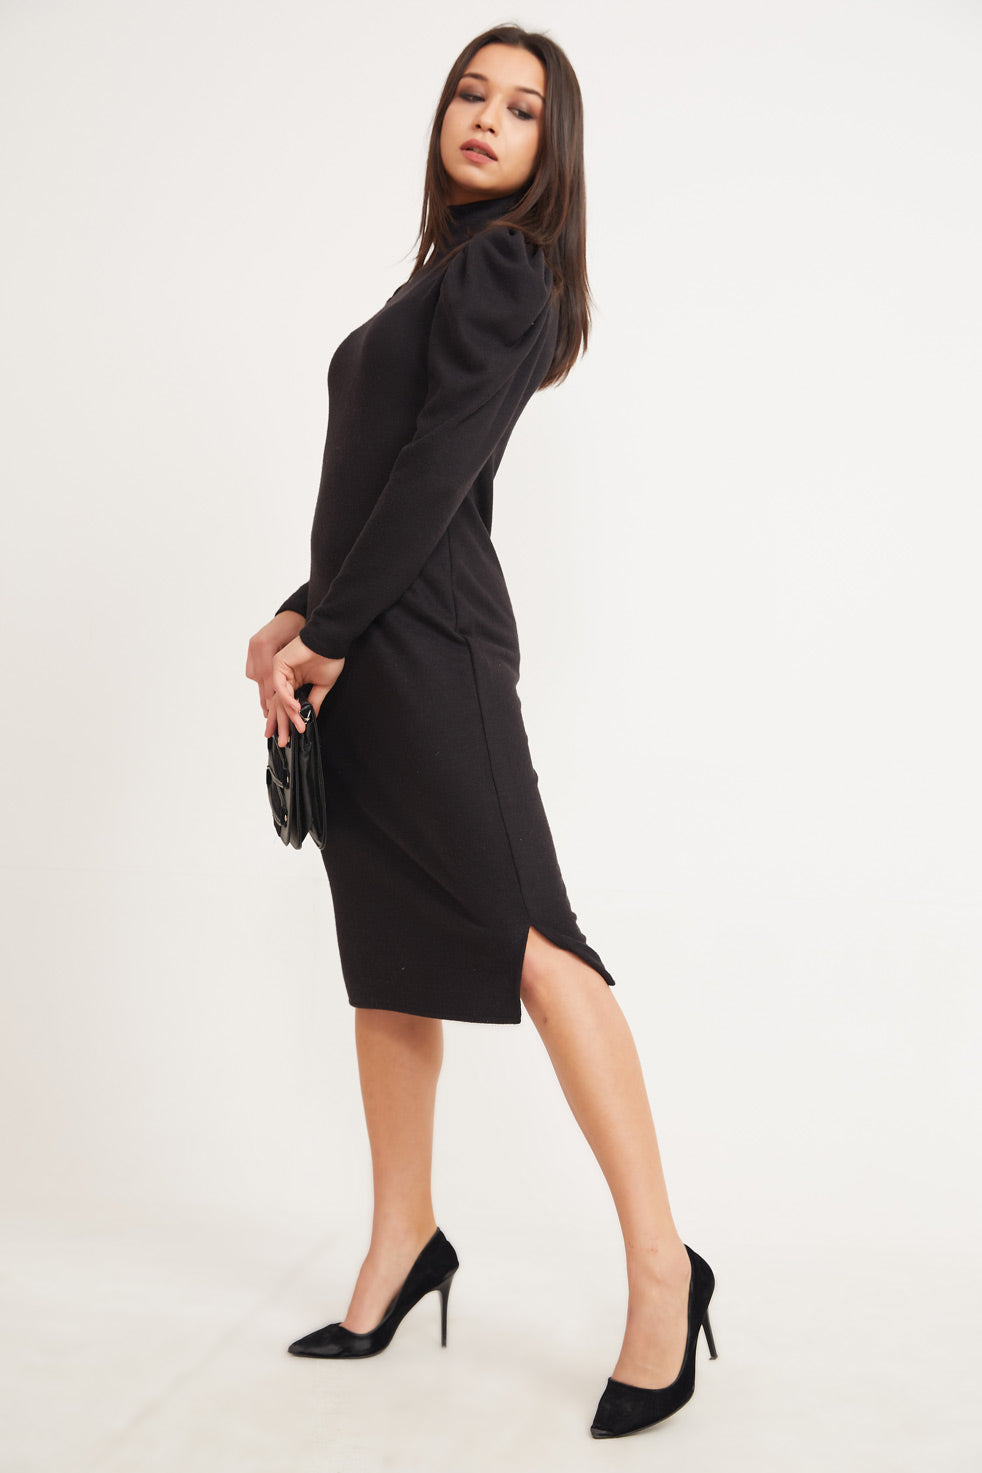 Women's Mock-Turtleneck Black Midi Dress